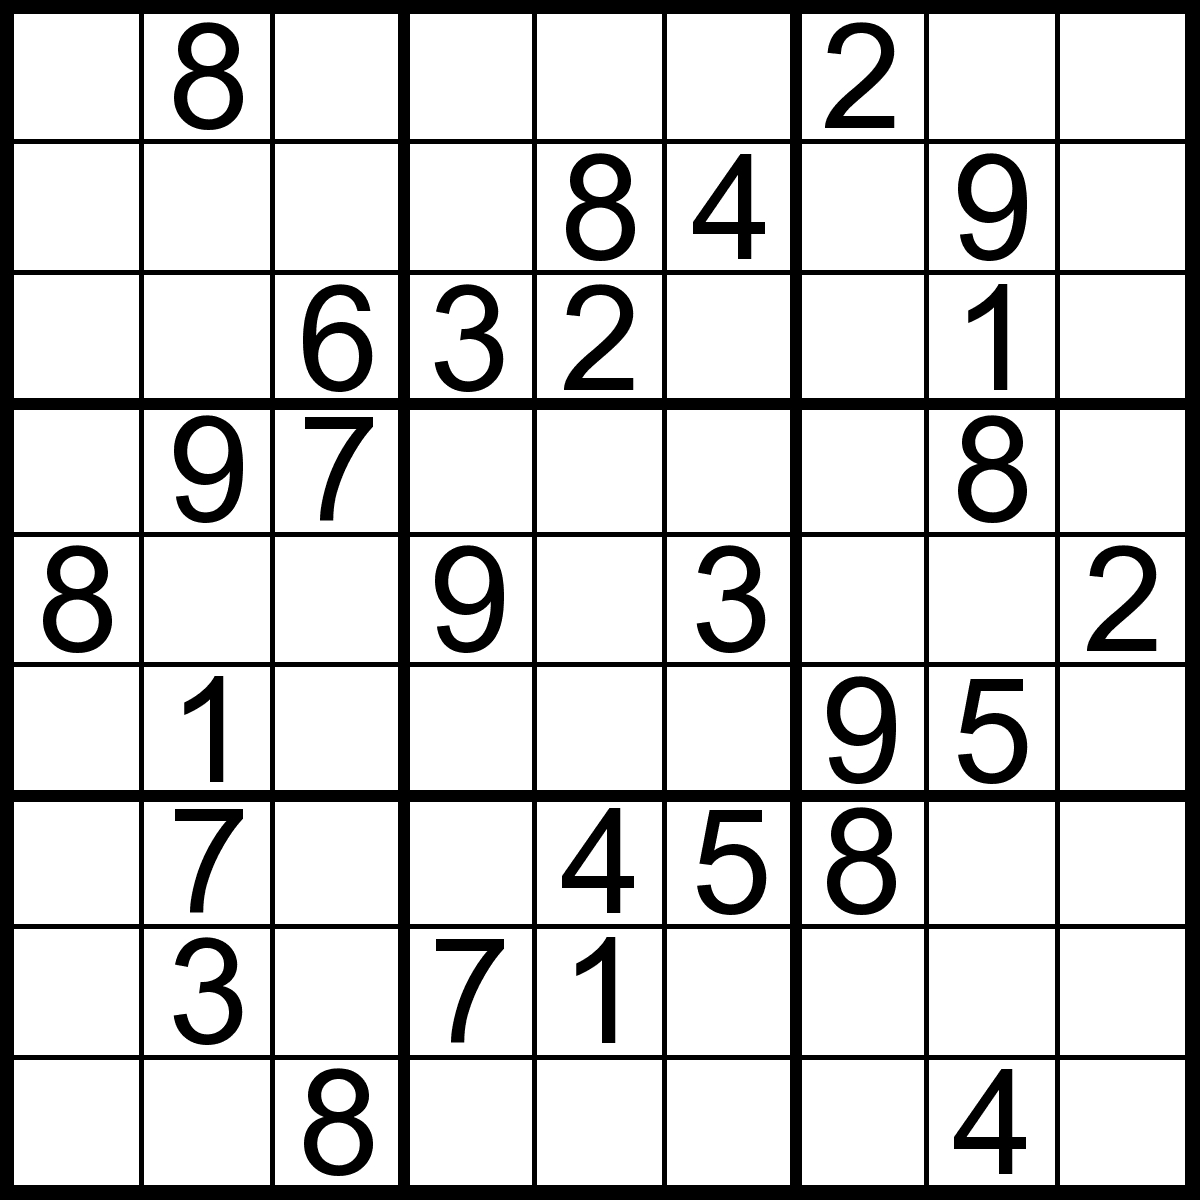 Sudoku Printable Puzzles - Yahoo Image Search Results | Puzzles For - Download Printable Sudoku Puzzles Free